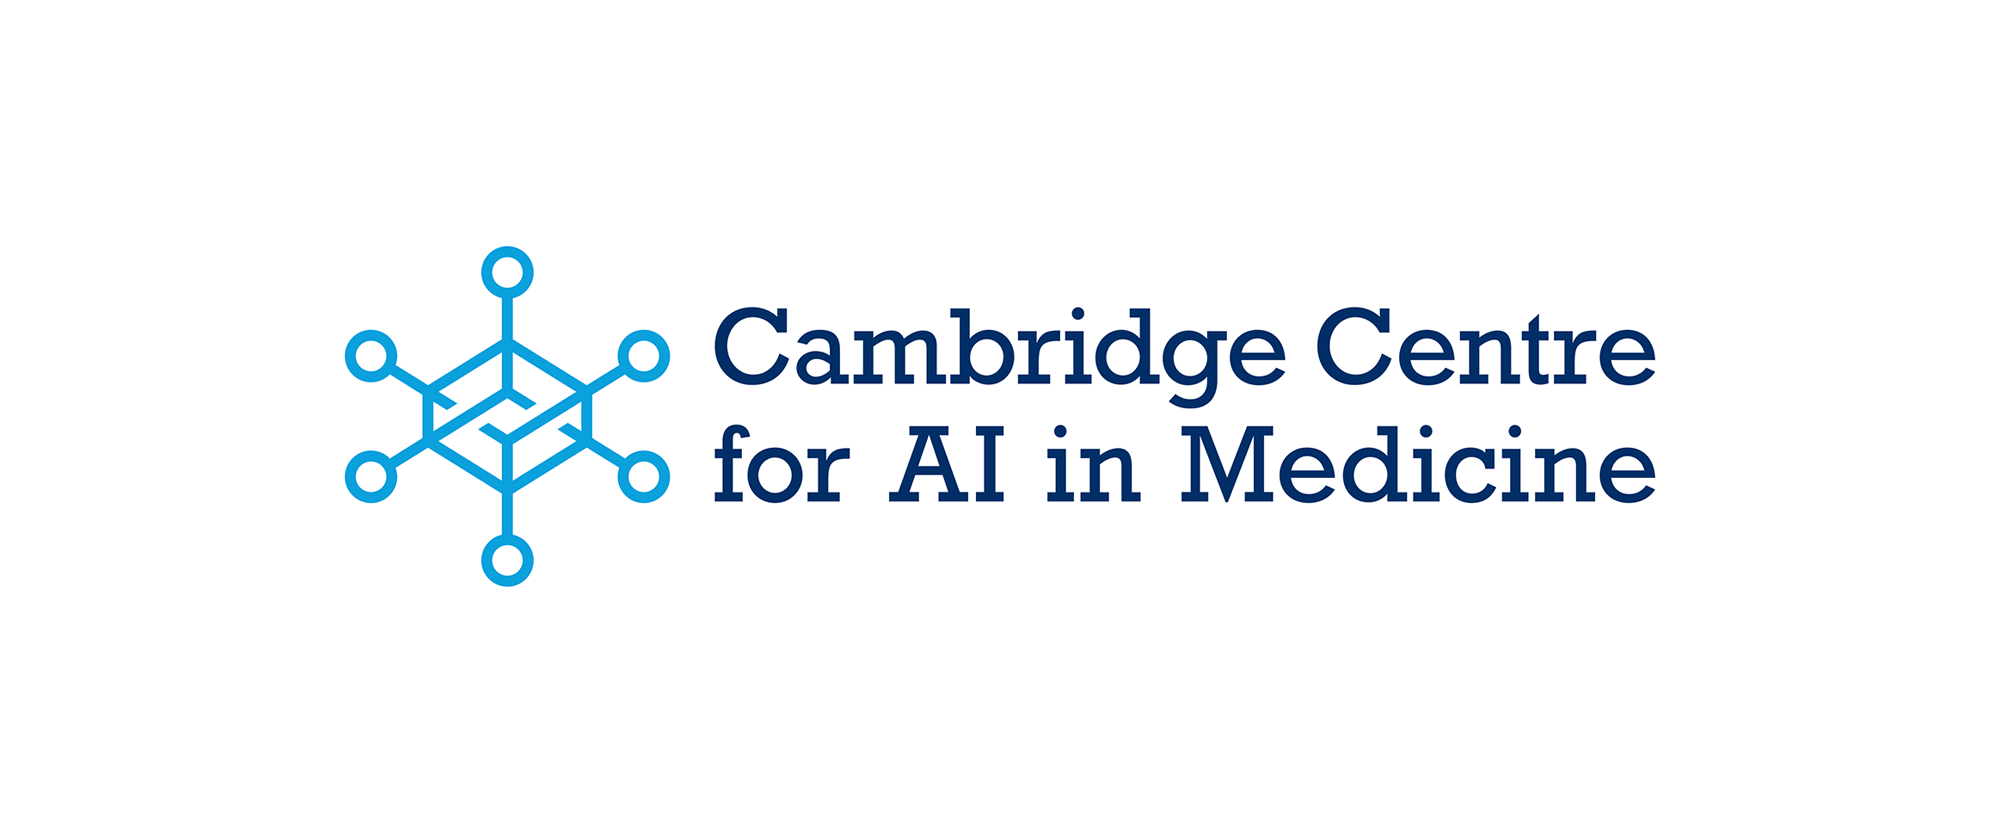 New Logo and Identity for Cambridge Centre for AI in Medicine by Ian Paget